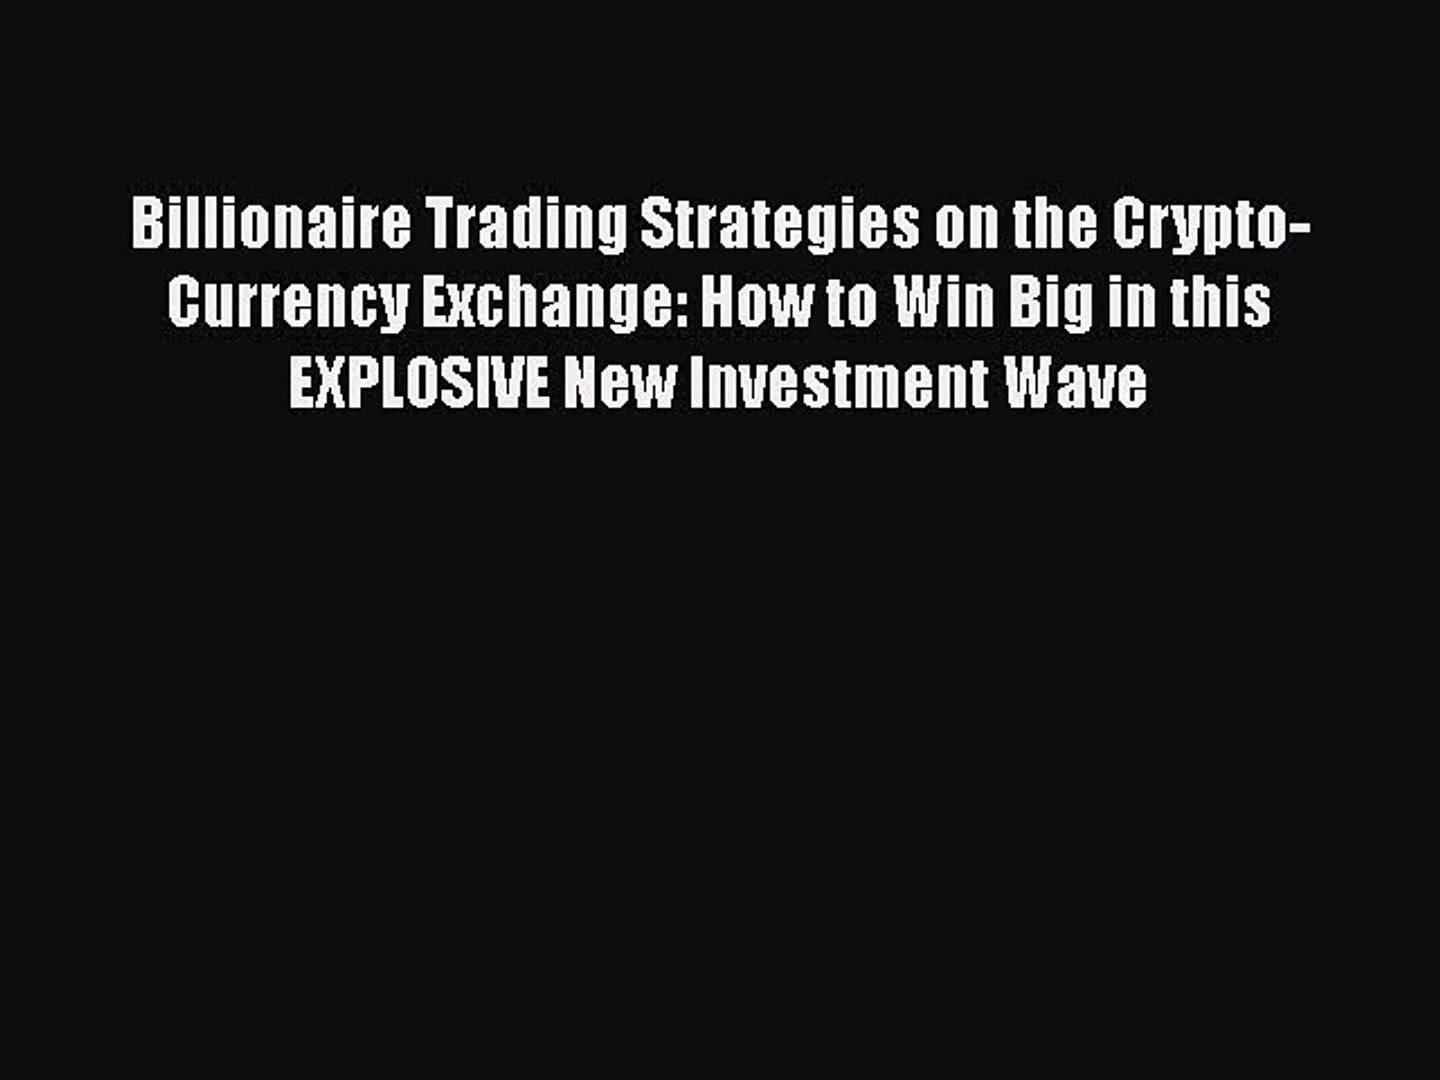 [PDF] Billionaire Trading Strategies on the Crypto-Currency Exchange: How to Win Big in this